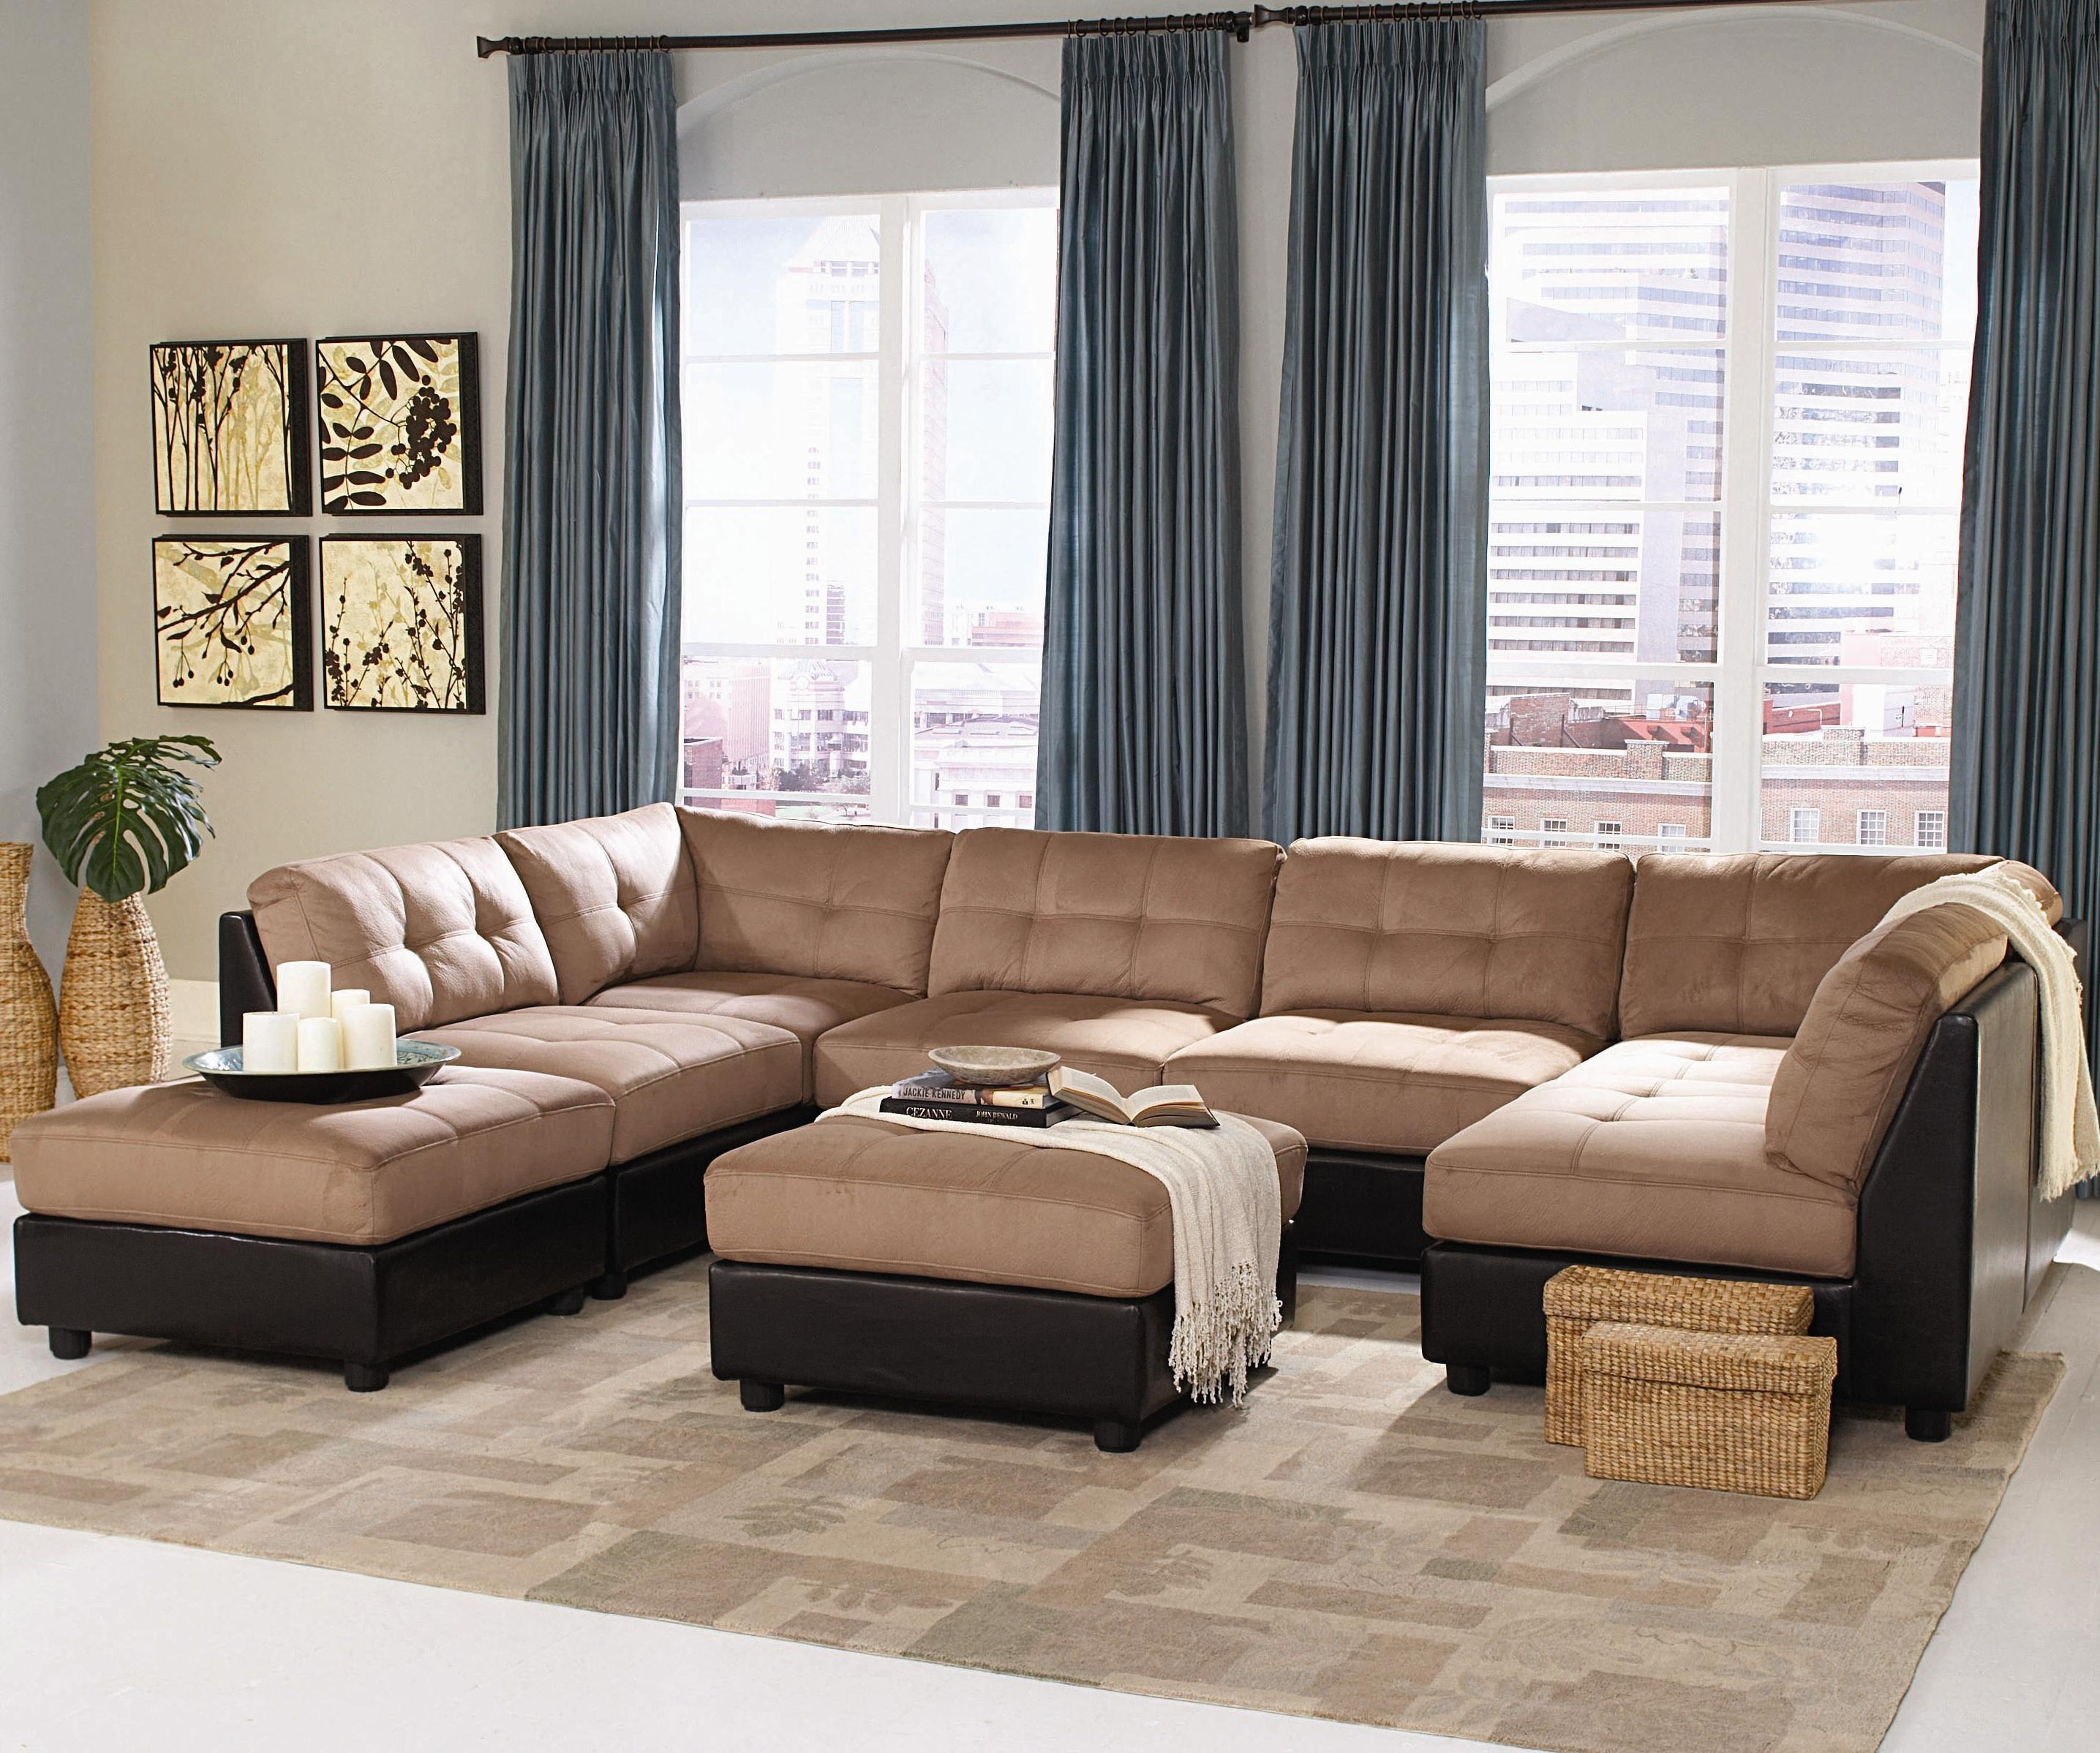 20 Top Traditional Sectional Sofas Living Room Furniture  Sofa Ideas